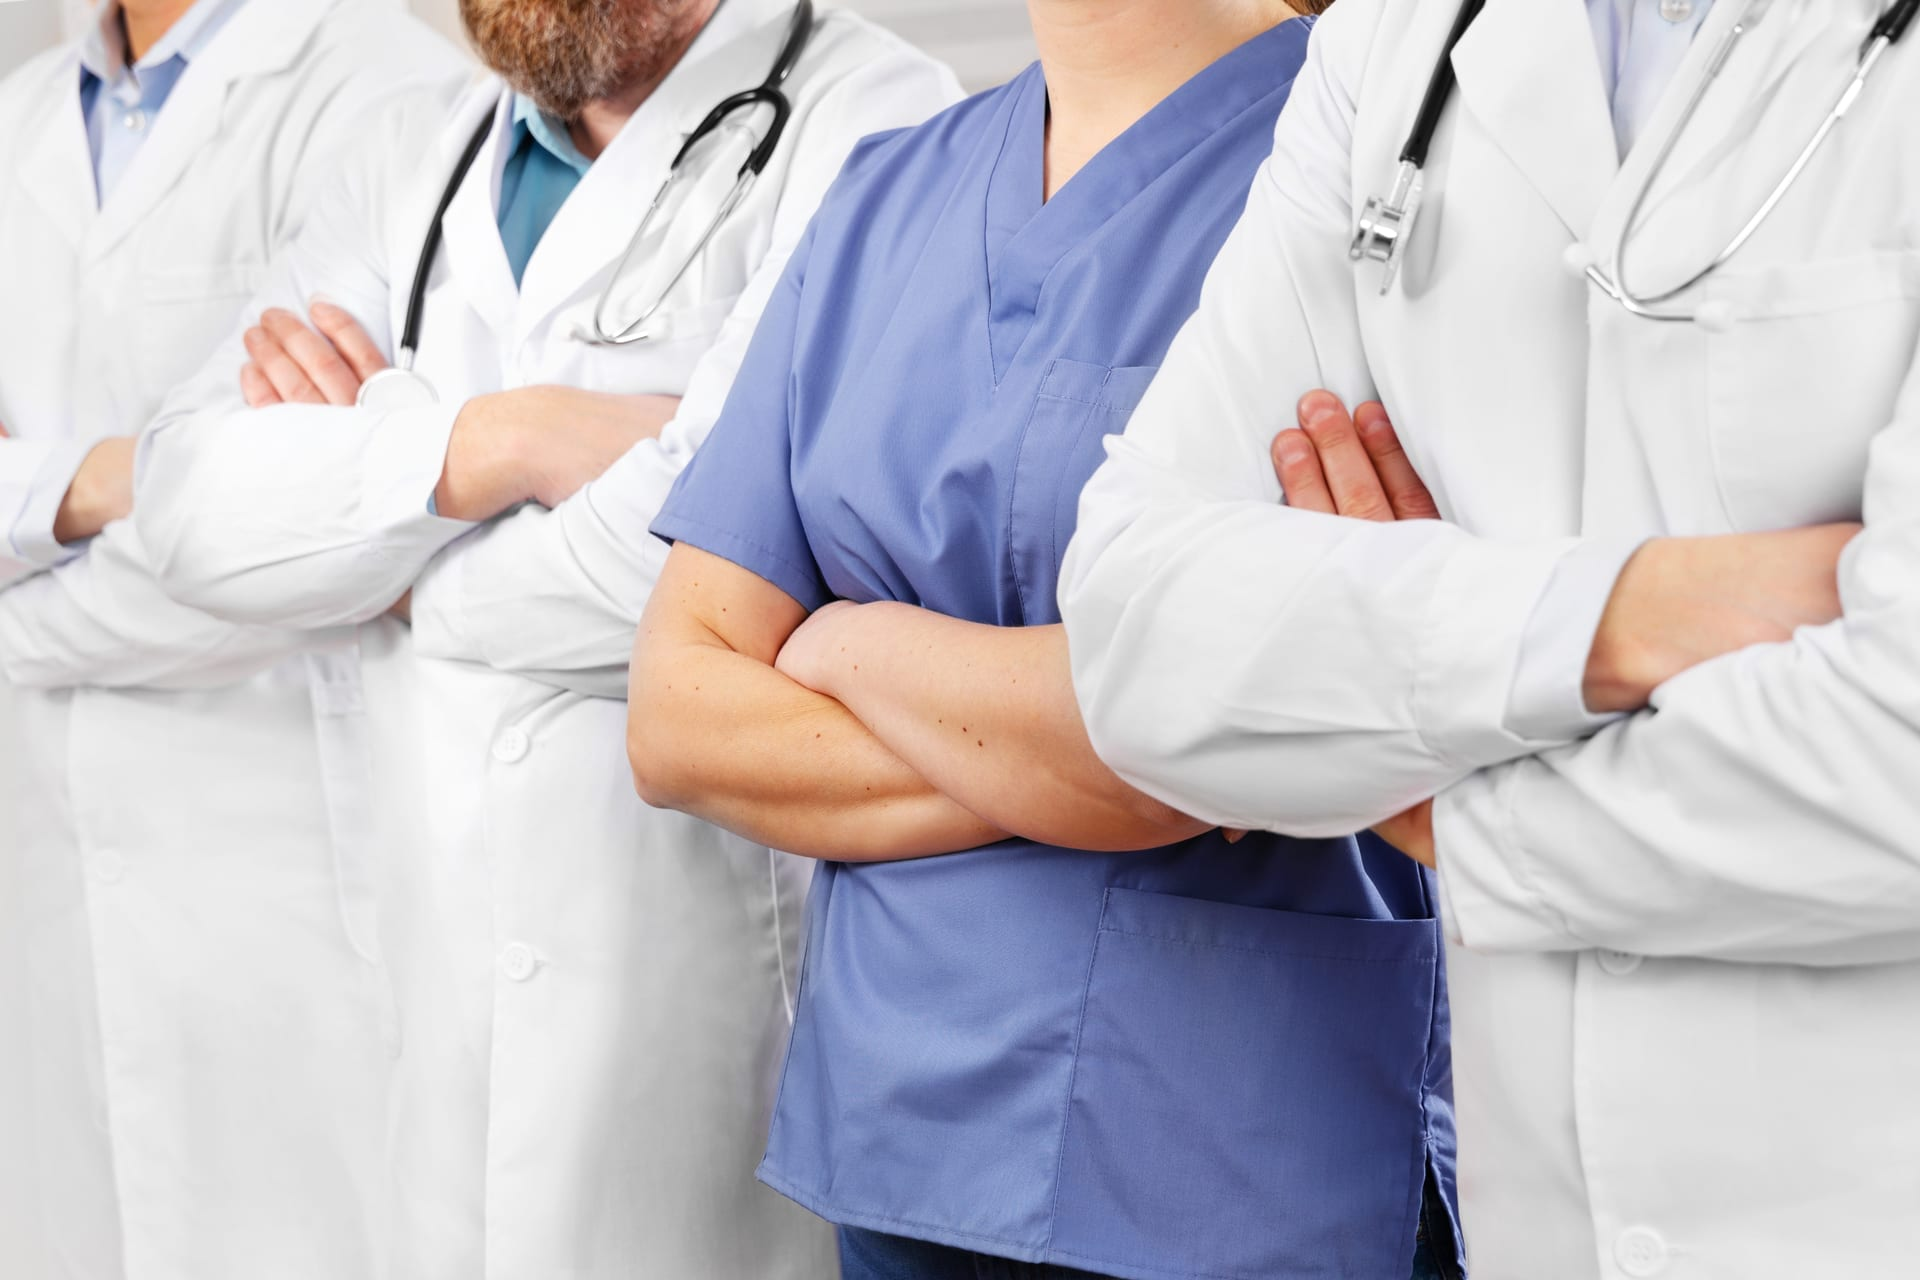 A Healthcare Attorney's Best Tips for Healthcare Professionals Negotiating Their Contracts